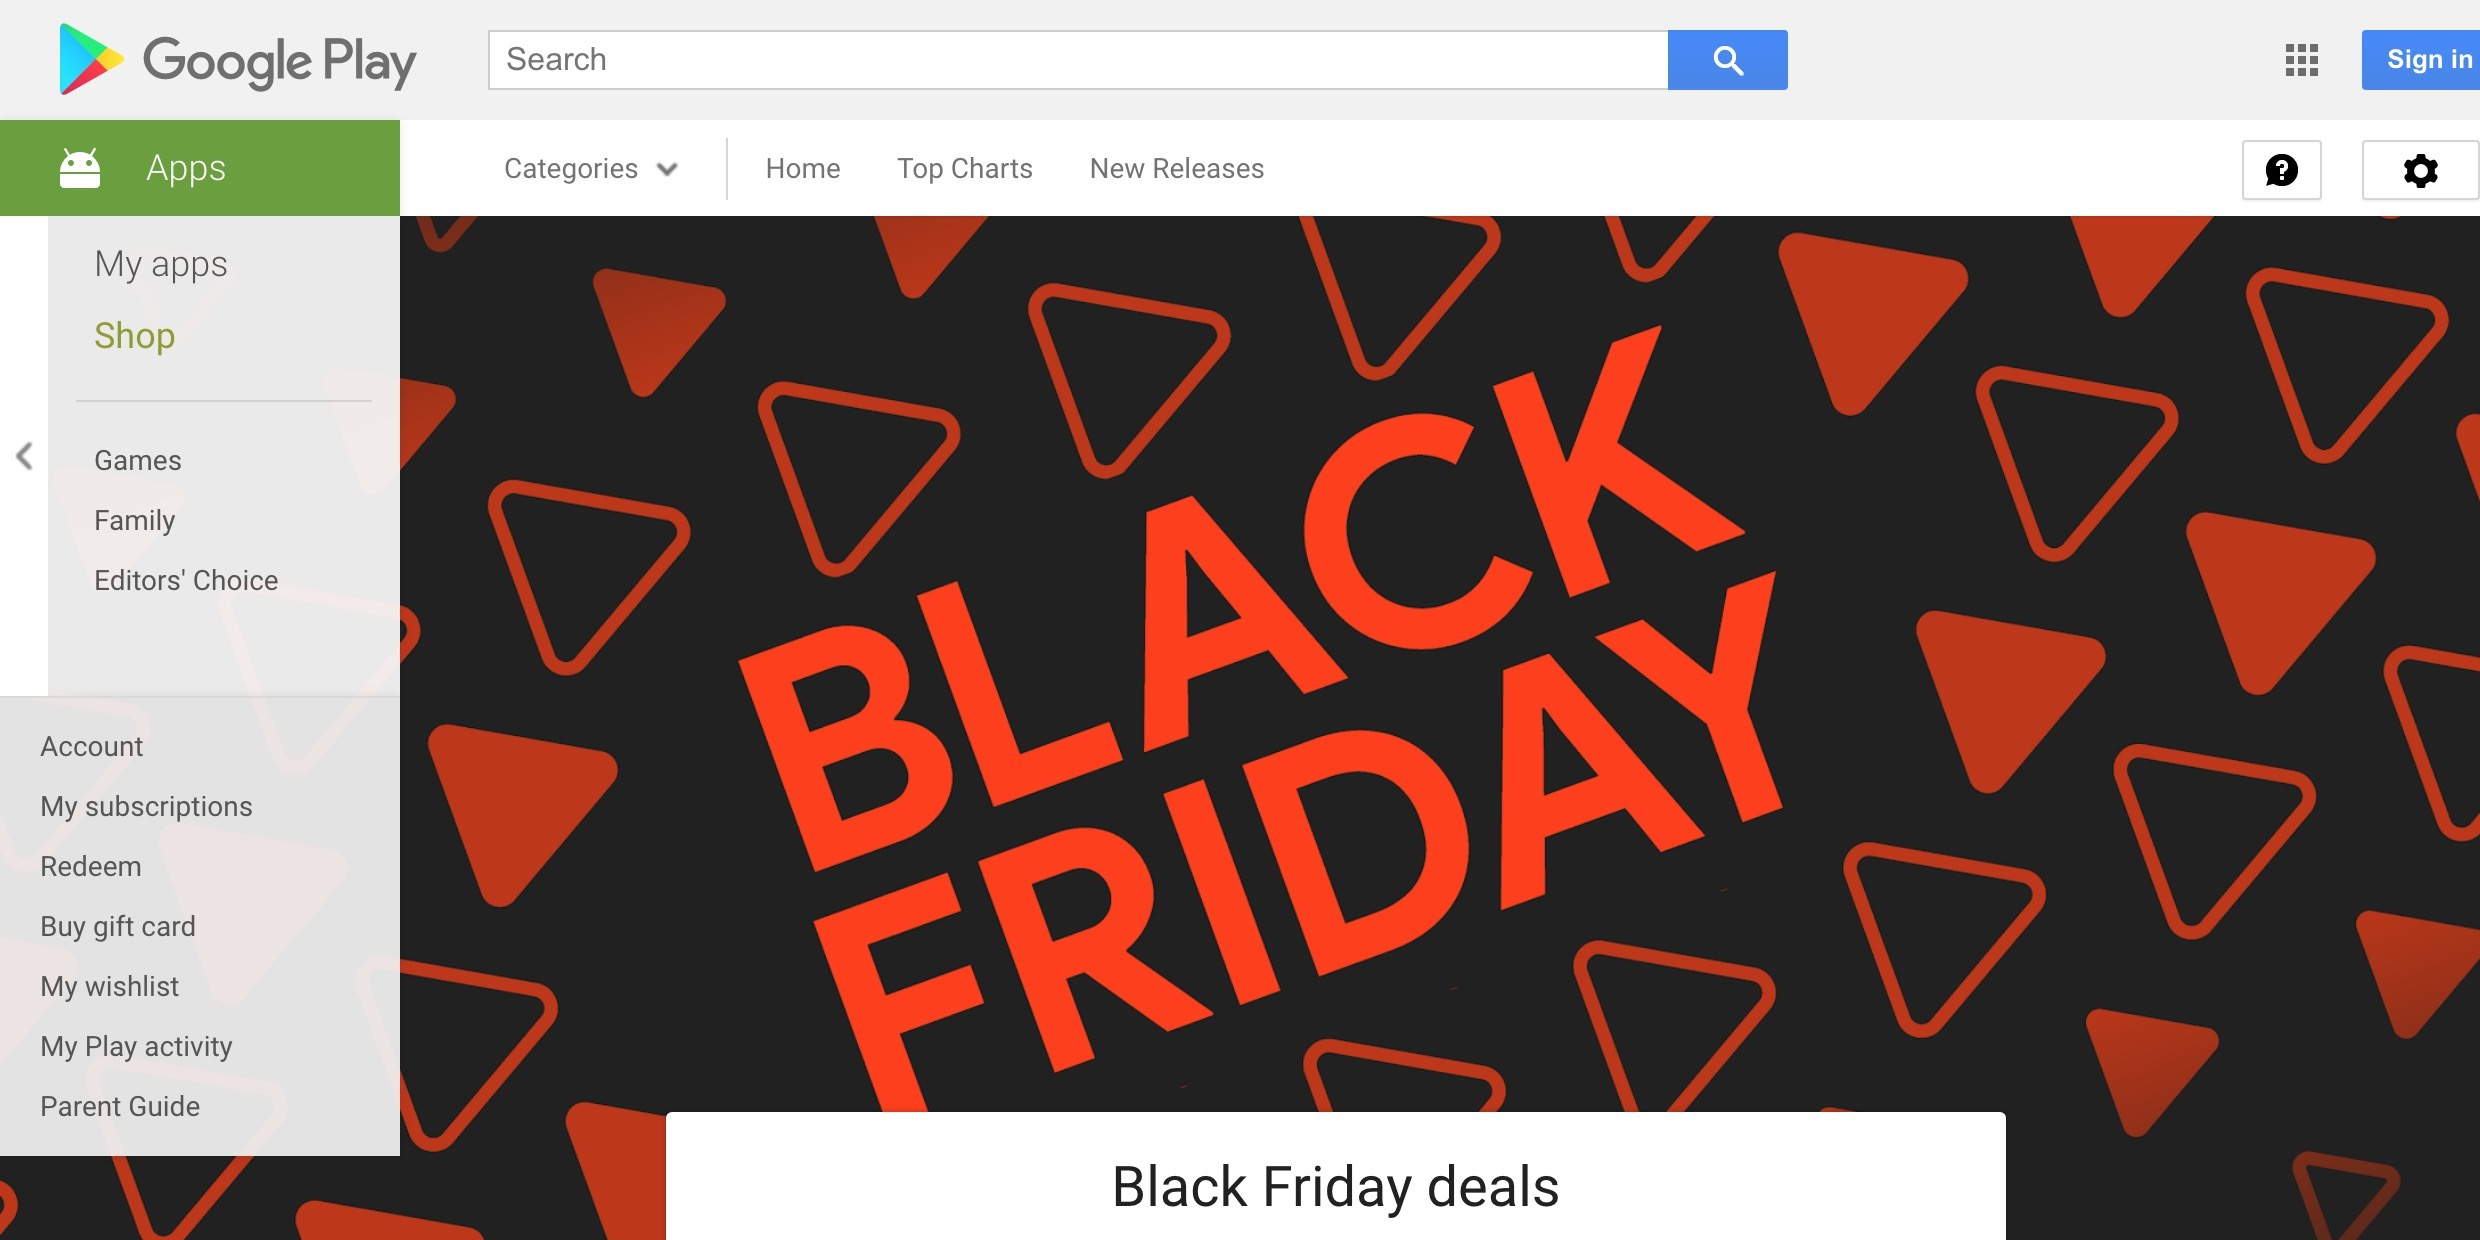 Check out Rent the Runways Black Friday deal recommendations